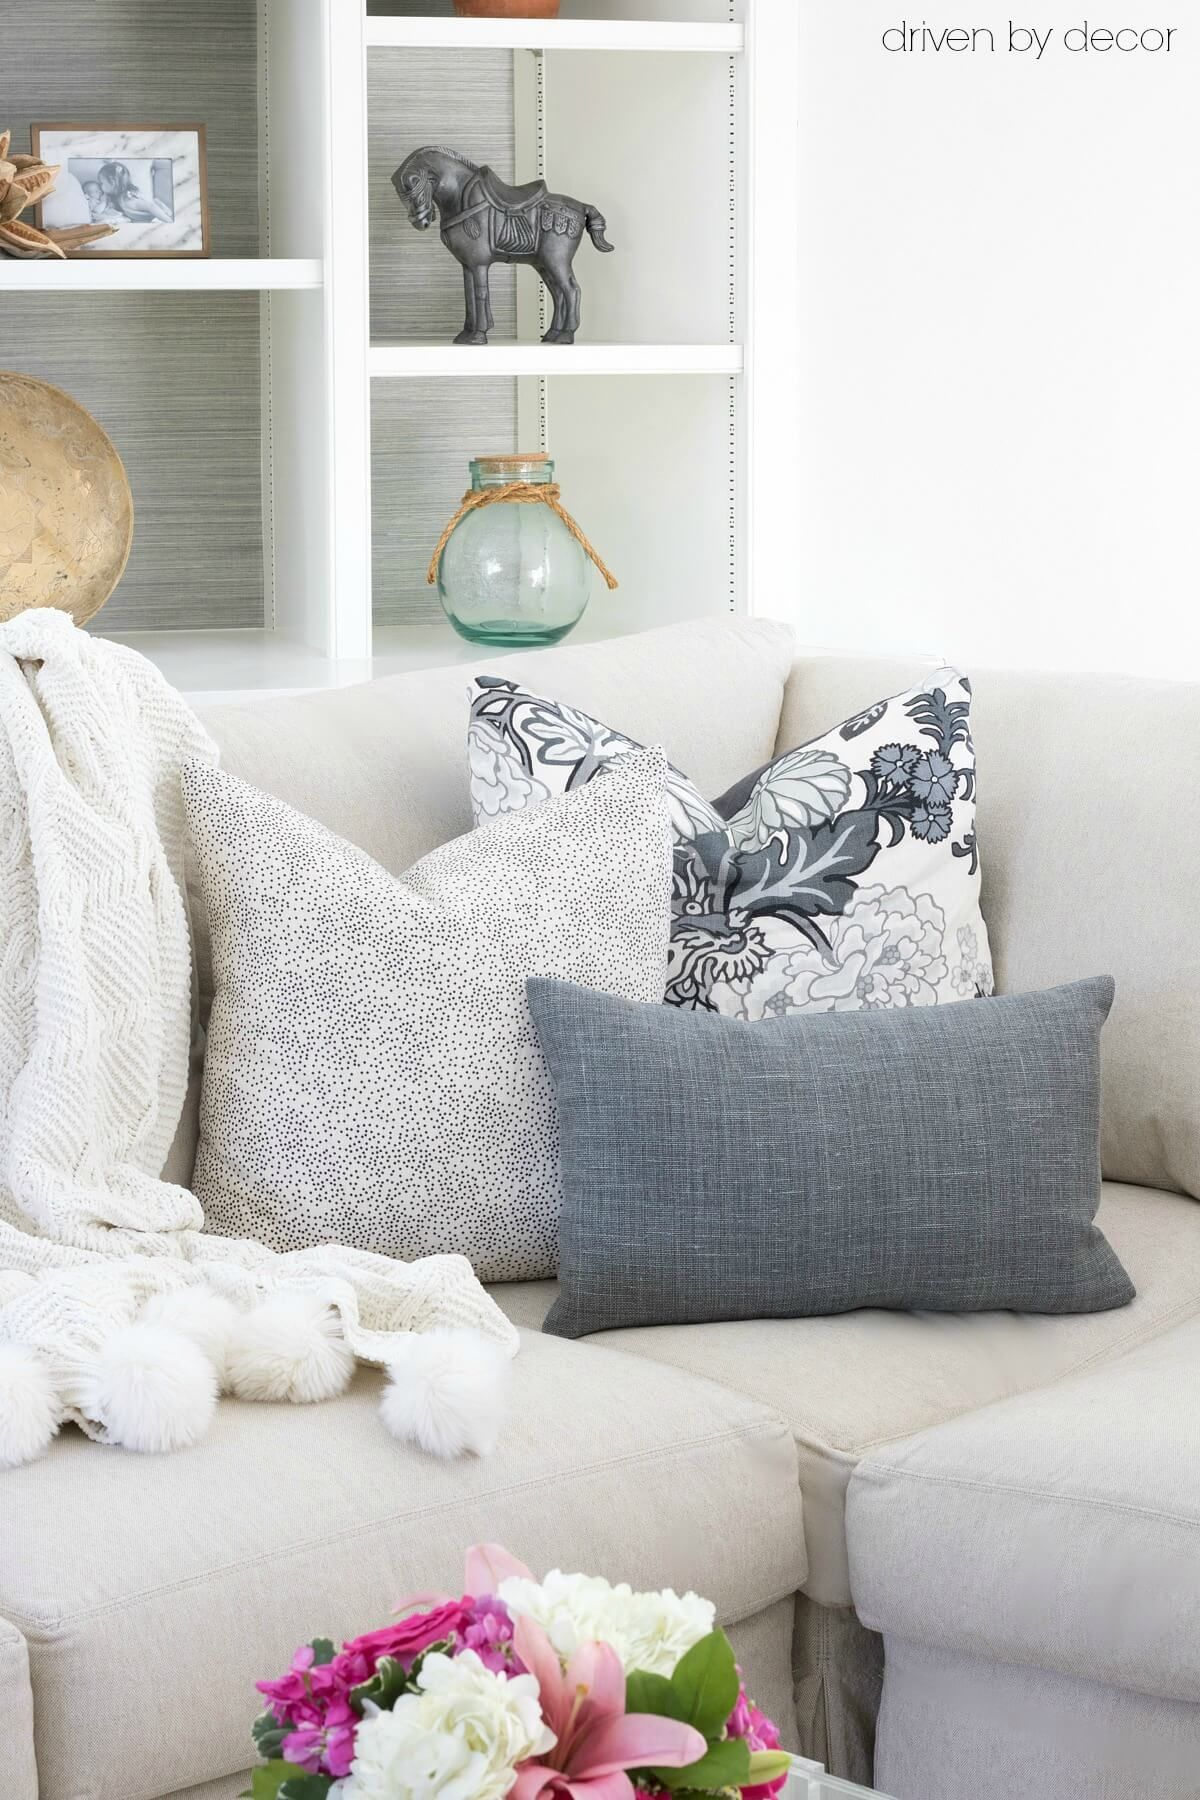 living room decorative pillows home decor ideas for modern 101 how to choose arrange throw favorite wondering what size buy type of inserts or them on your couch sectional i m sharing all my best pillow tips